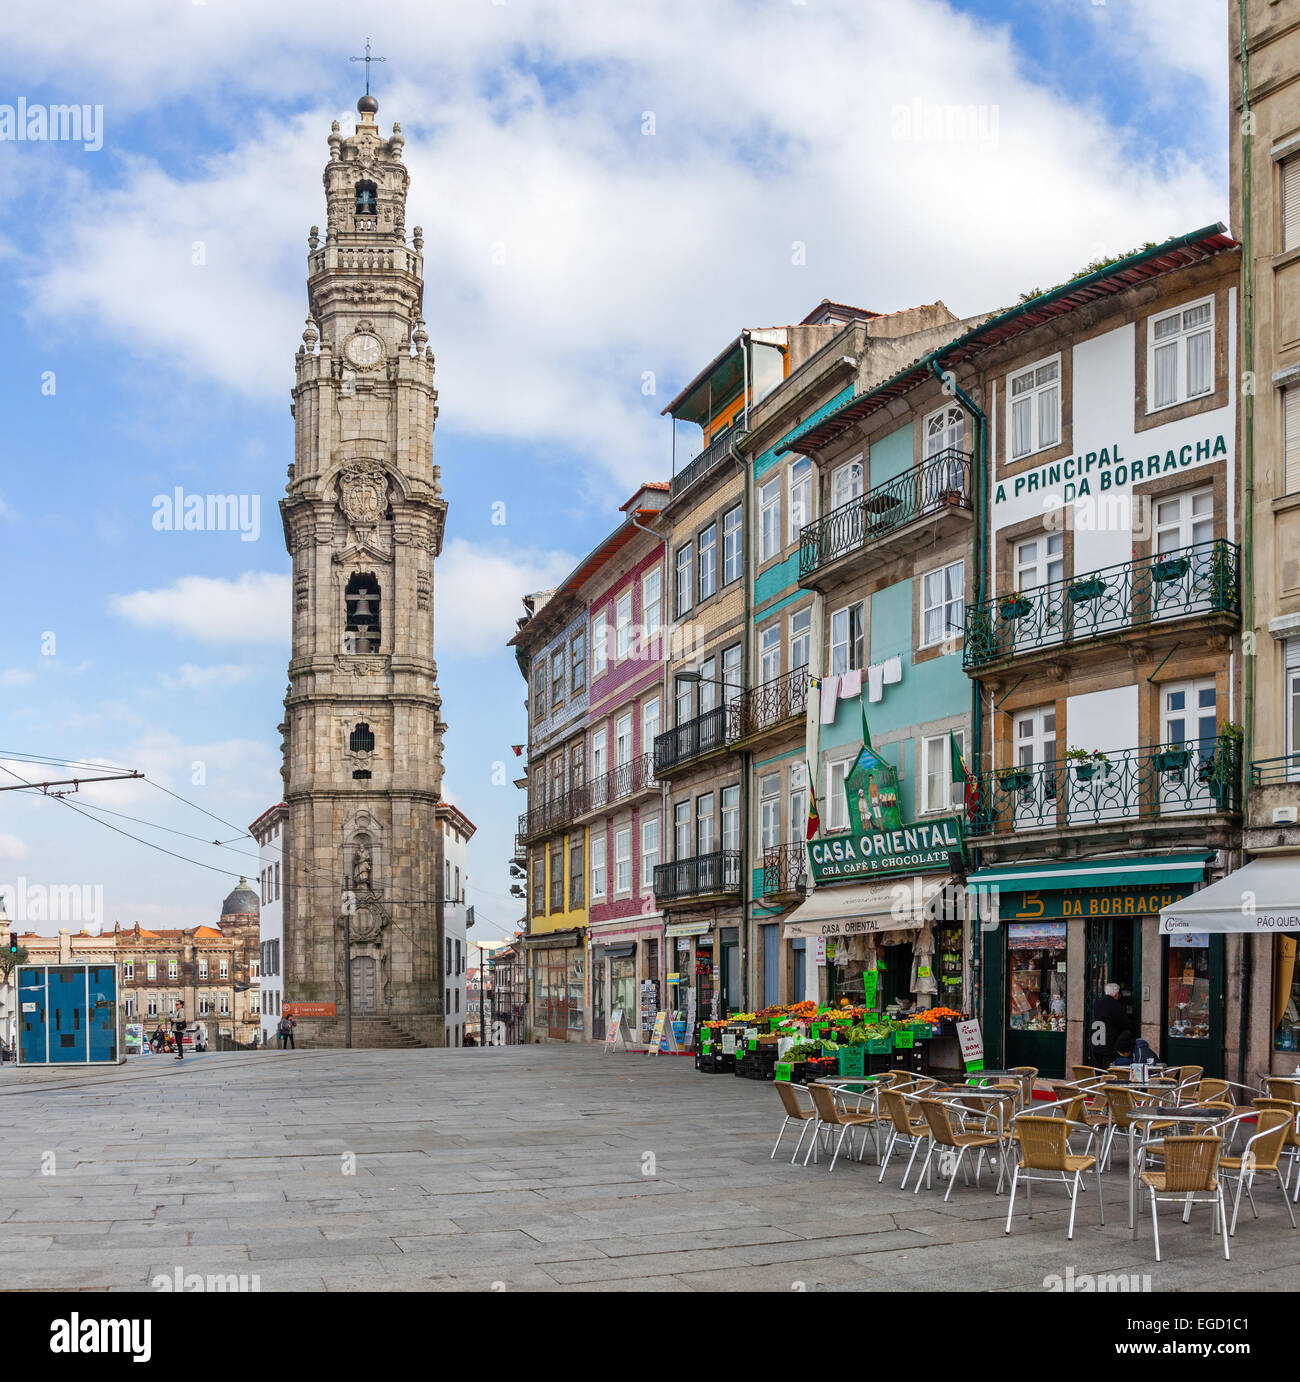 Porto, Portugal. The Iconic Clerigos Tower, One Of The Landmarks And  Symbols Of The City. Unesco World Heritage Site